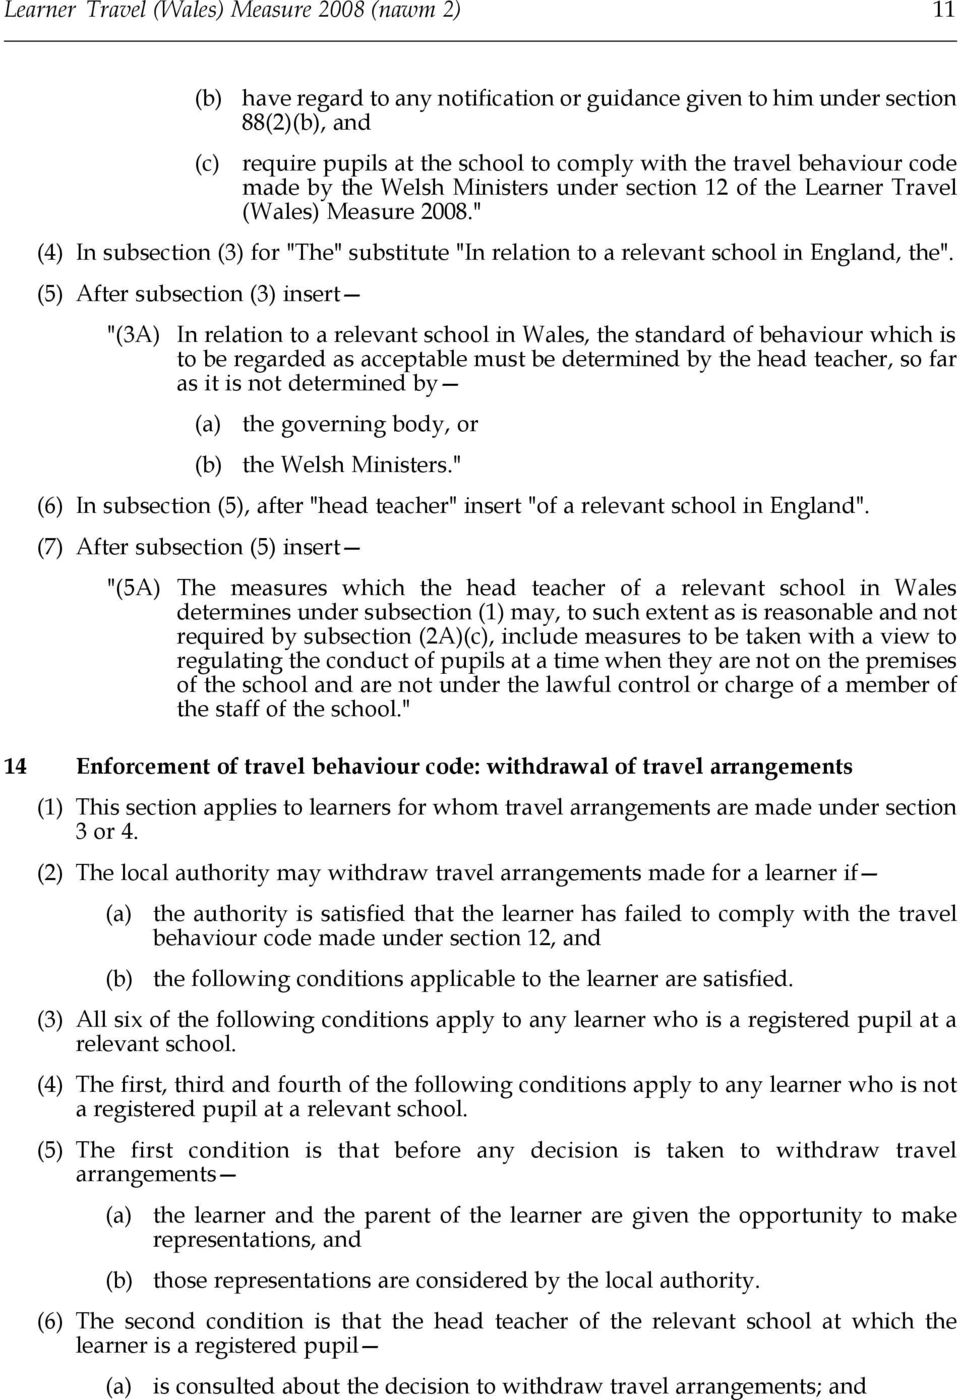 "(5) After subsection (3) insert ""(3A) In relation to a relevant school in Wales, the standard of behaviour which is to be regarded as acceptable must be determined by the head teacher, so far as it"